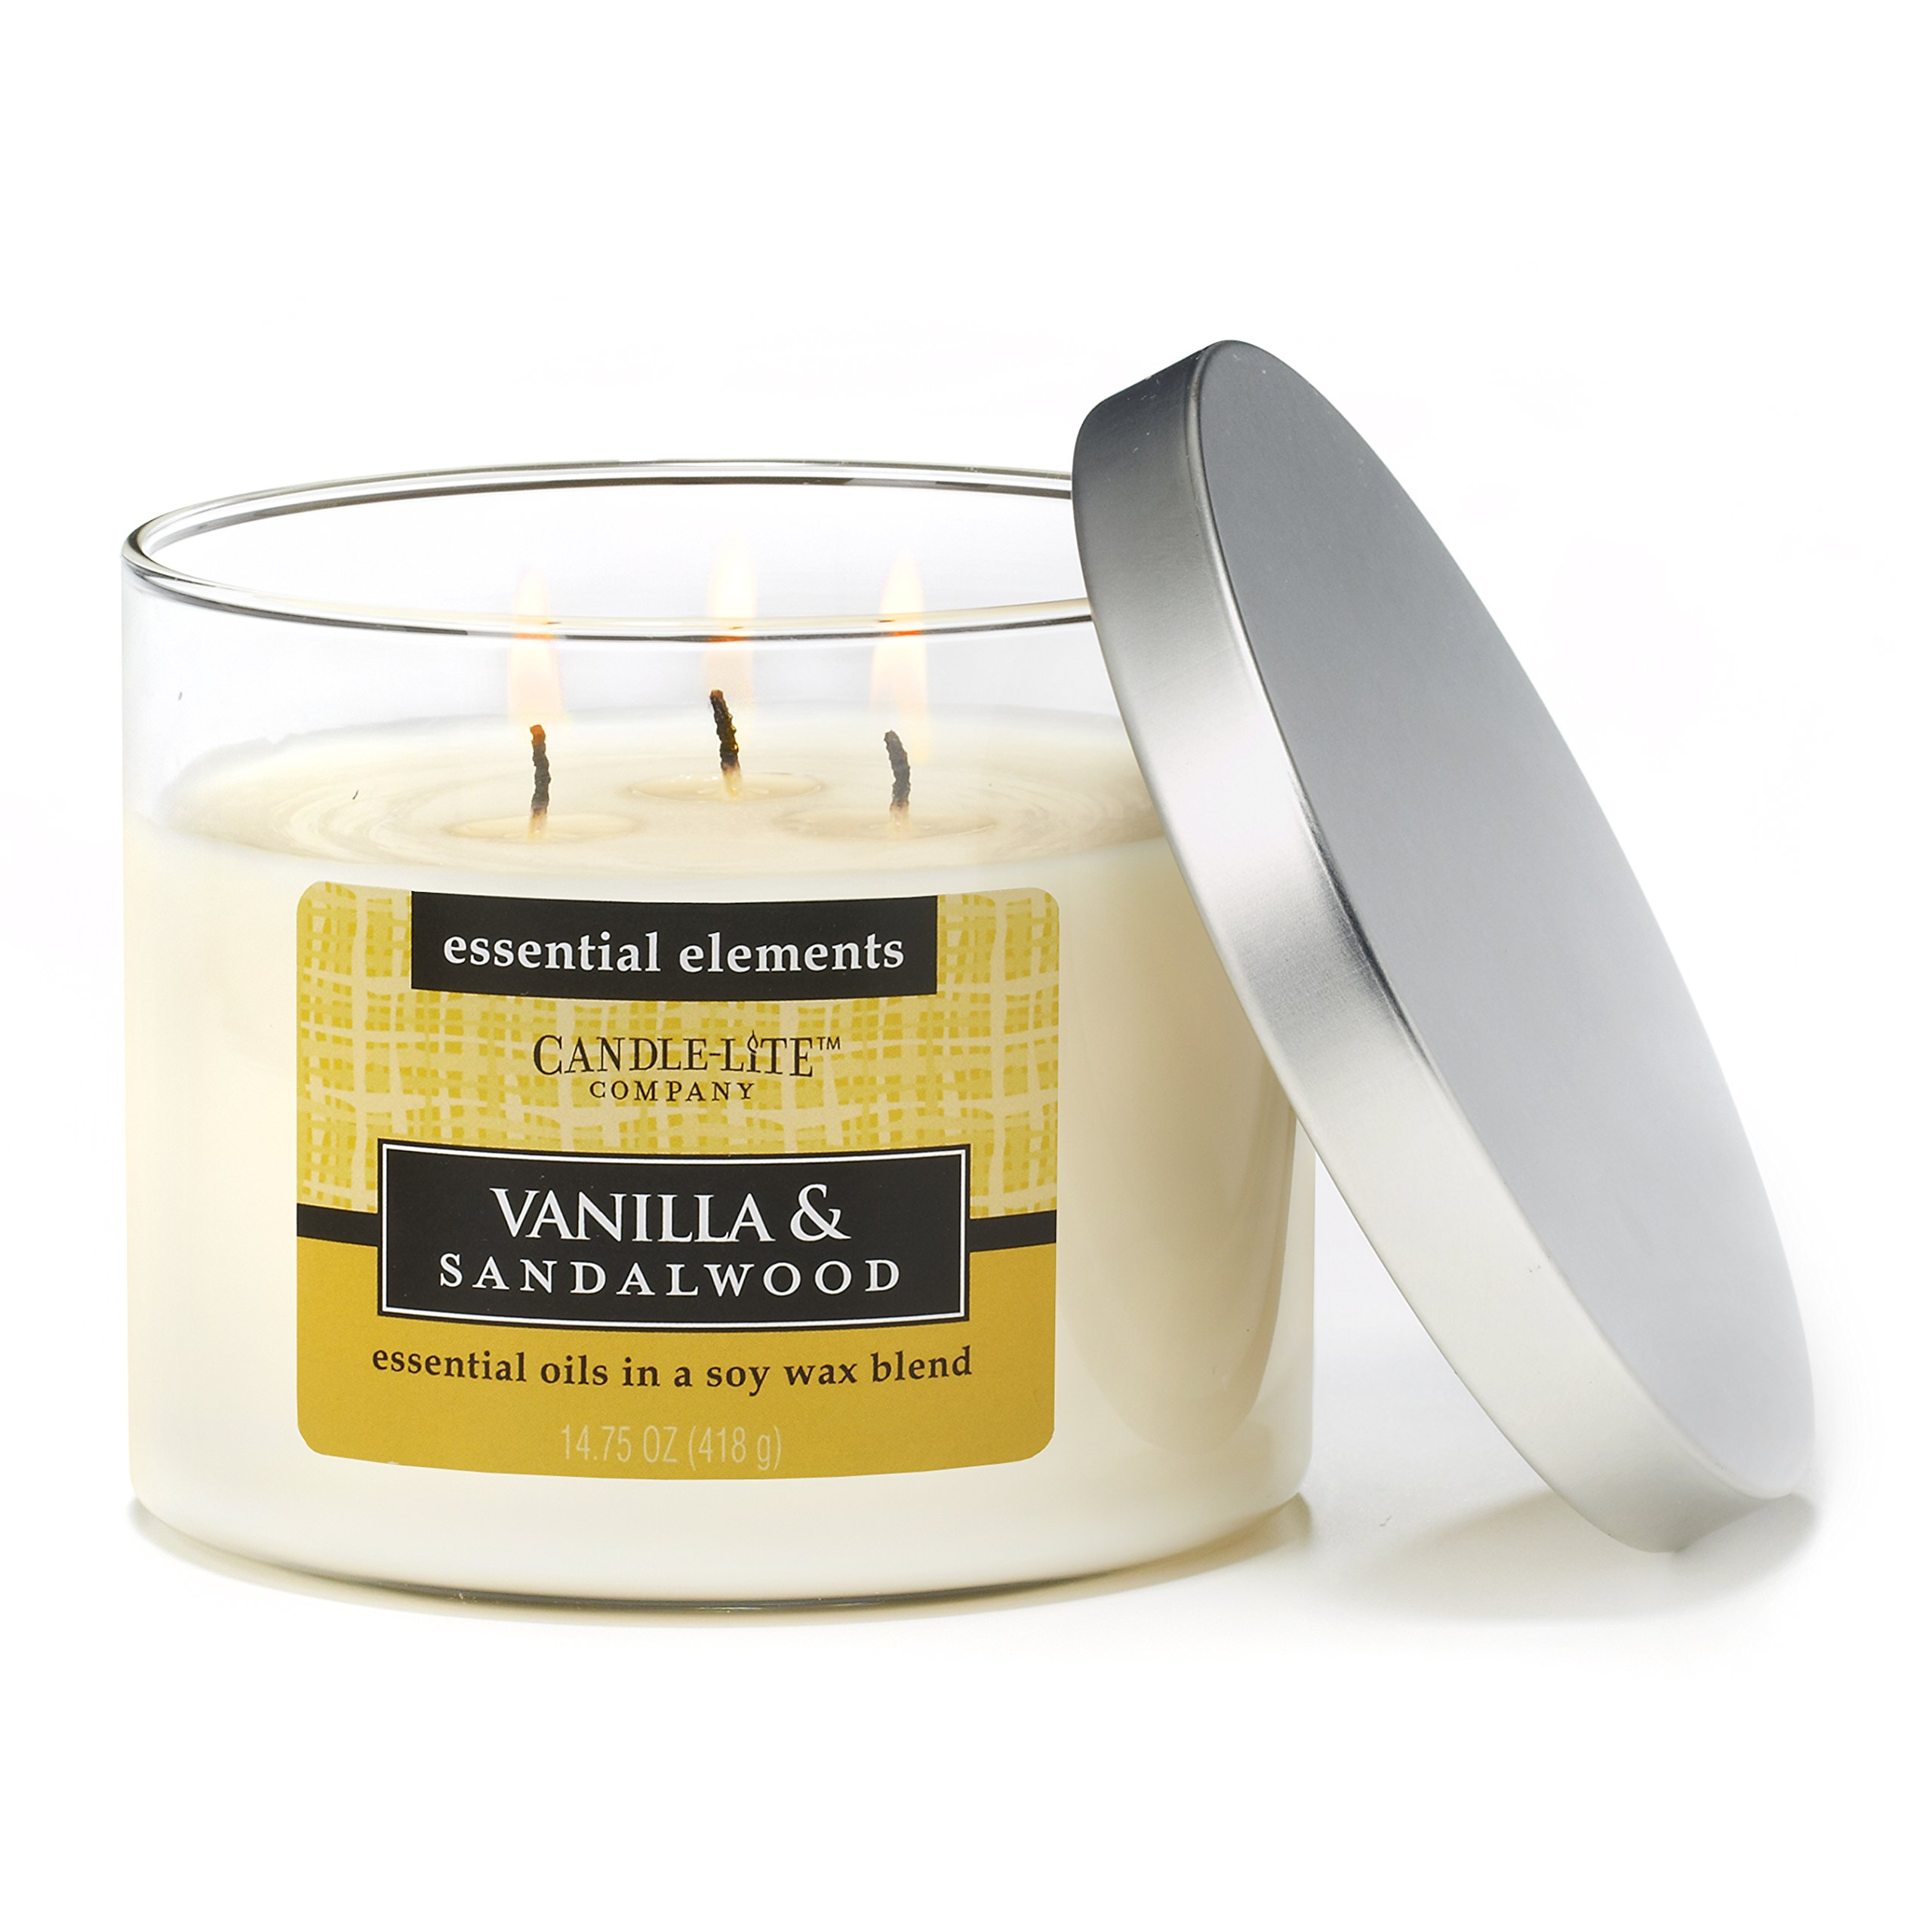 Candlelite Essential Elements 14-3/4-Ounce 3 Wick Candle with Soy Wax, Vanilla and Sandalwood by Candlelite (Image #1)